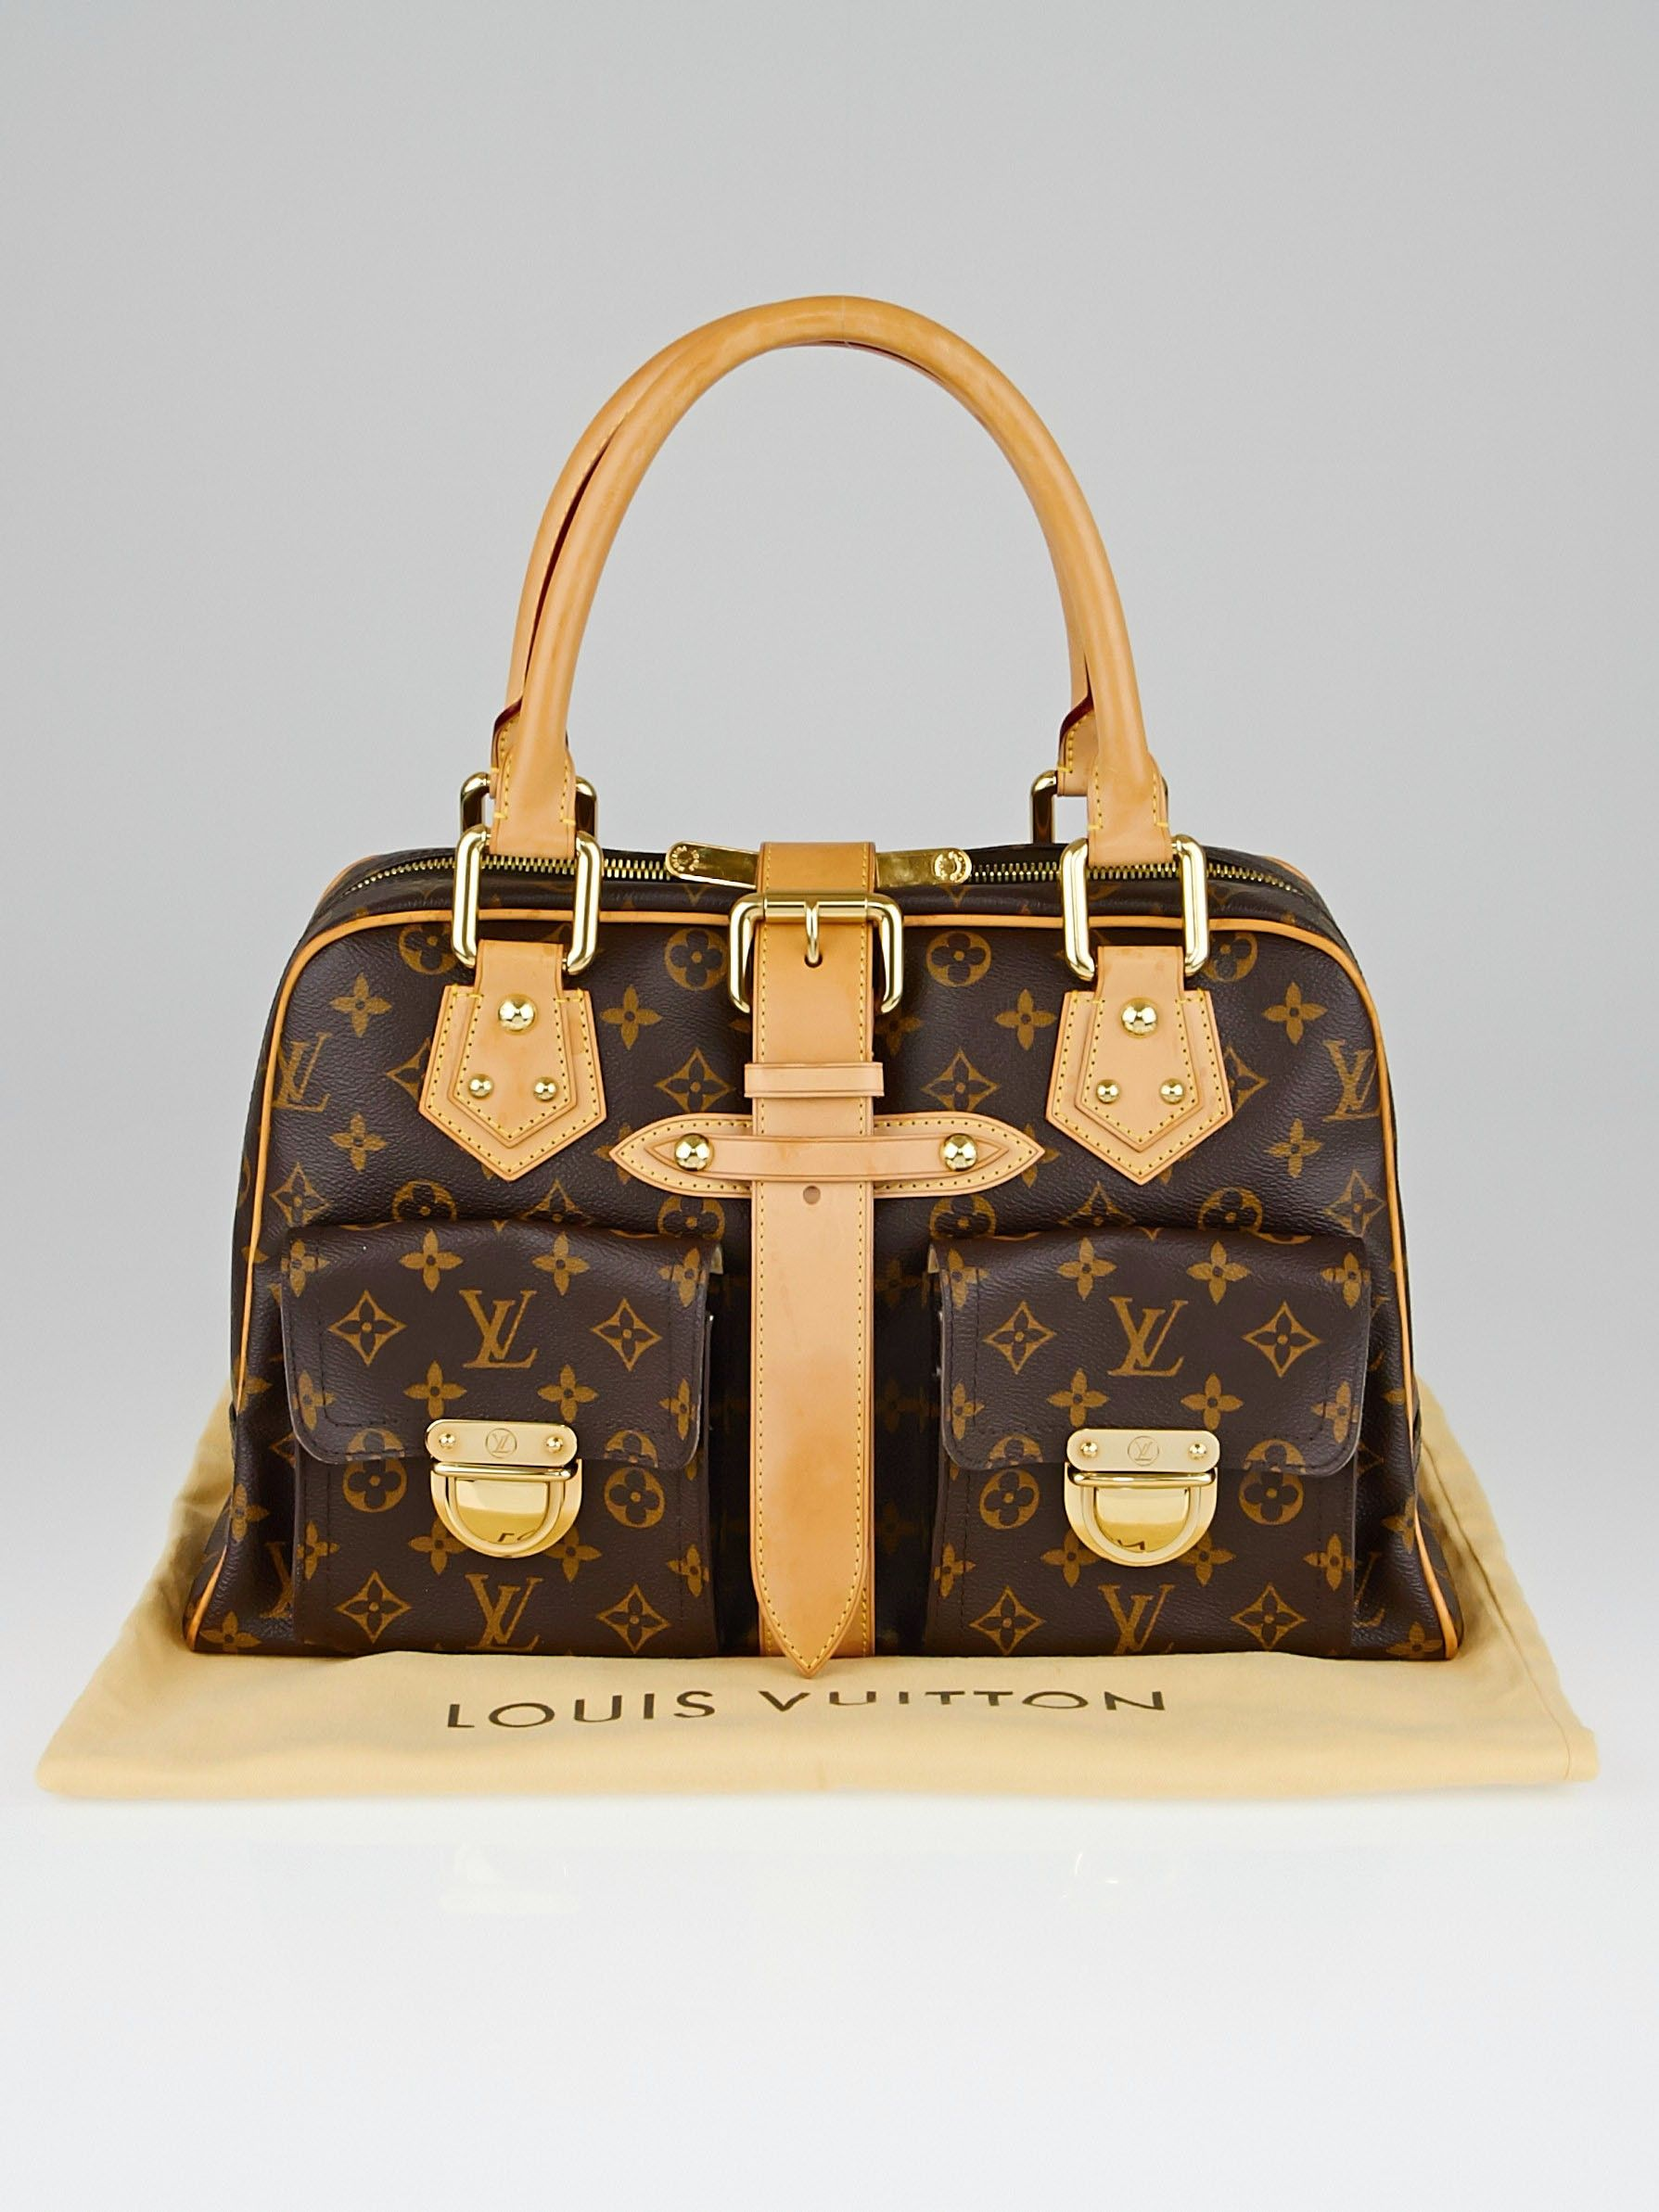 A mixture of Marc Jacobs  iconic bags with Louis Vuitton s classic  signatures is what makes this stunning bag a winning combination. c092beec38